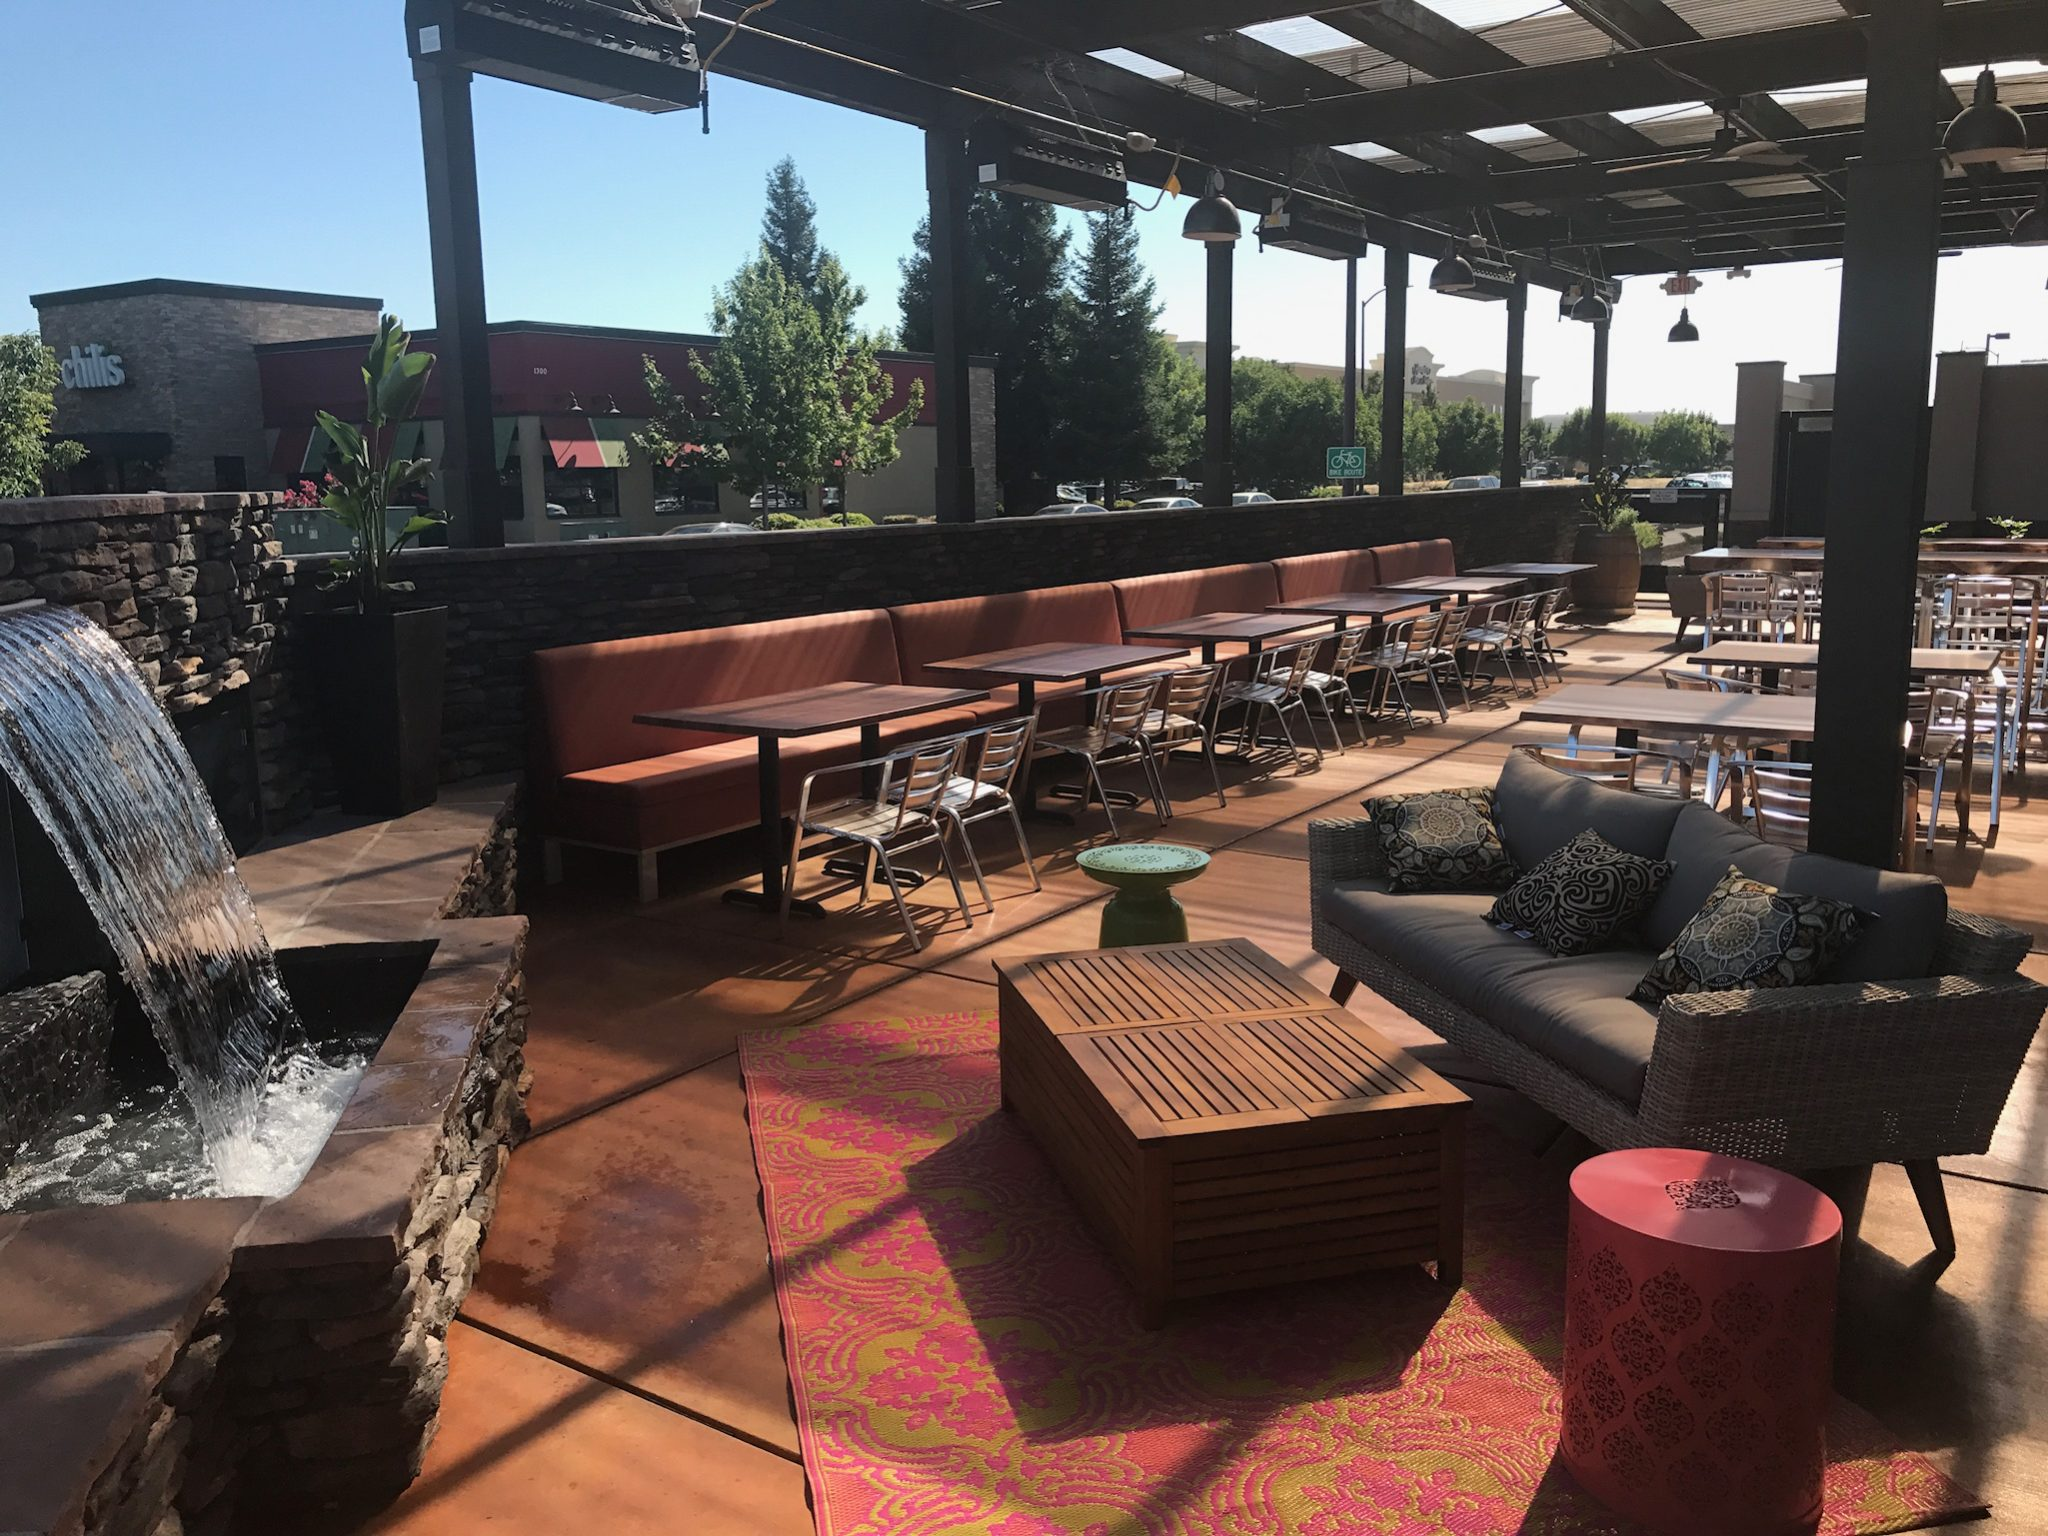 Spacious outdoor patio at Yuba City Pete's.